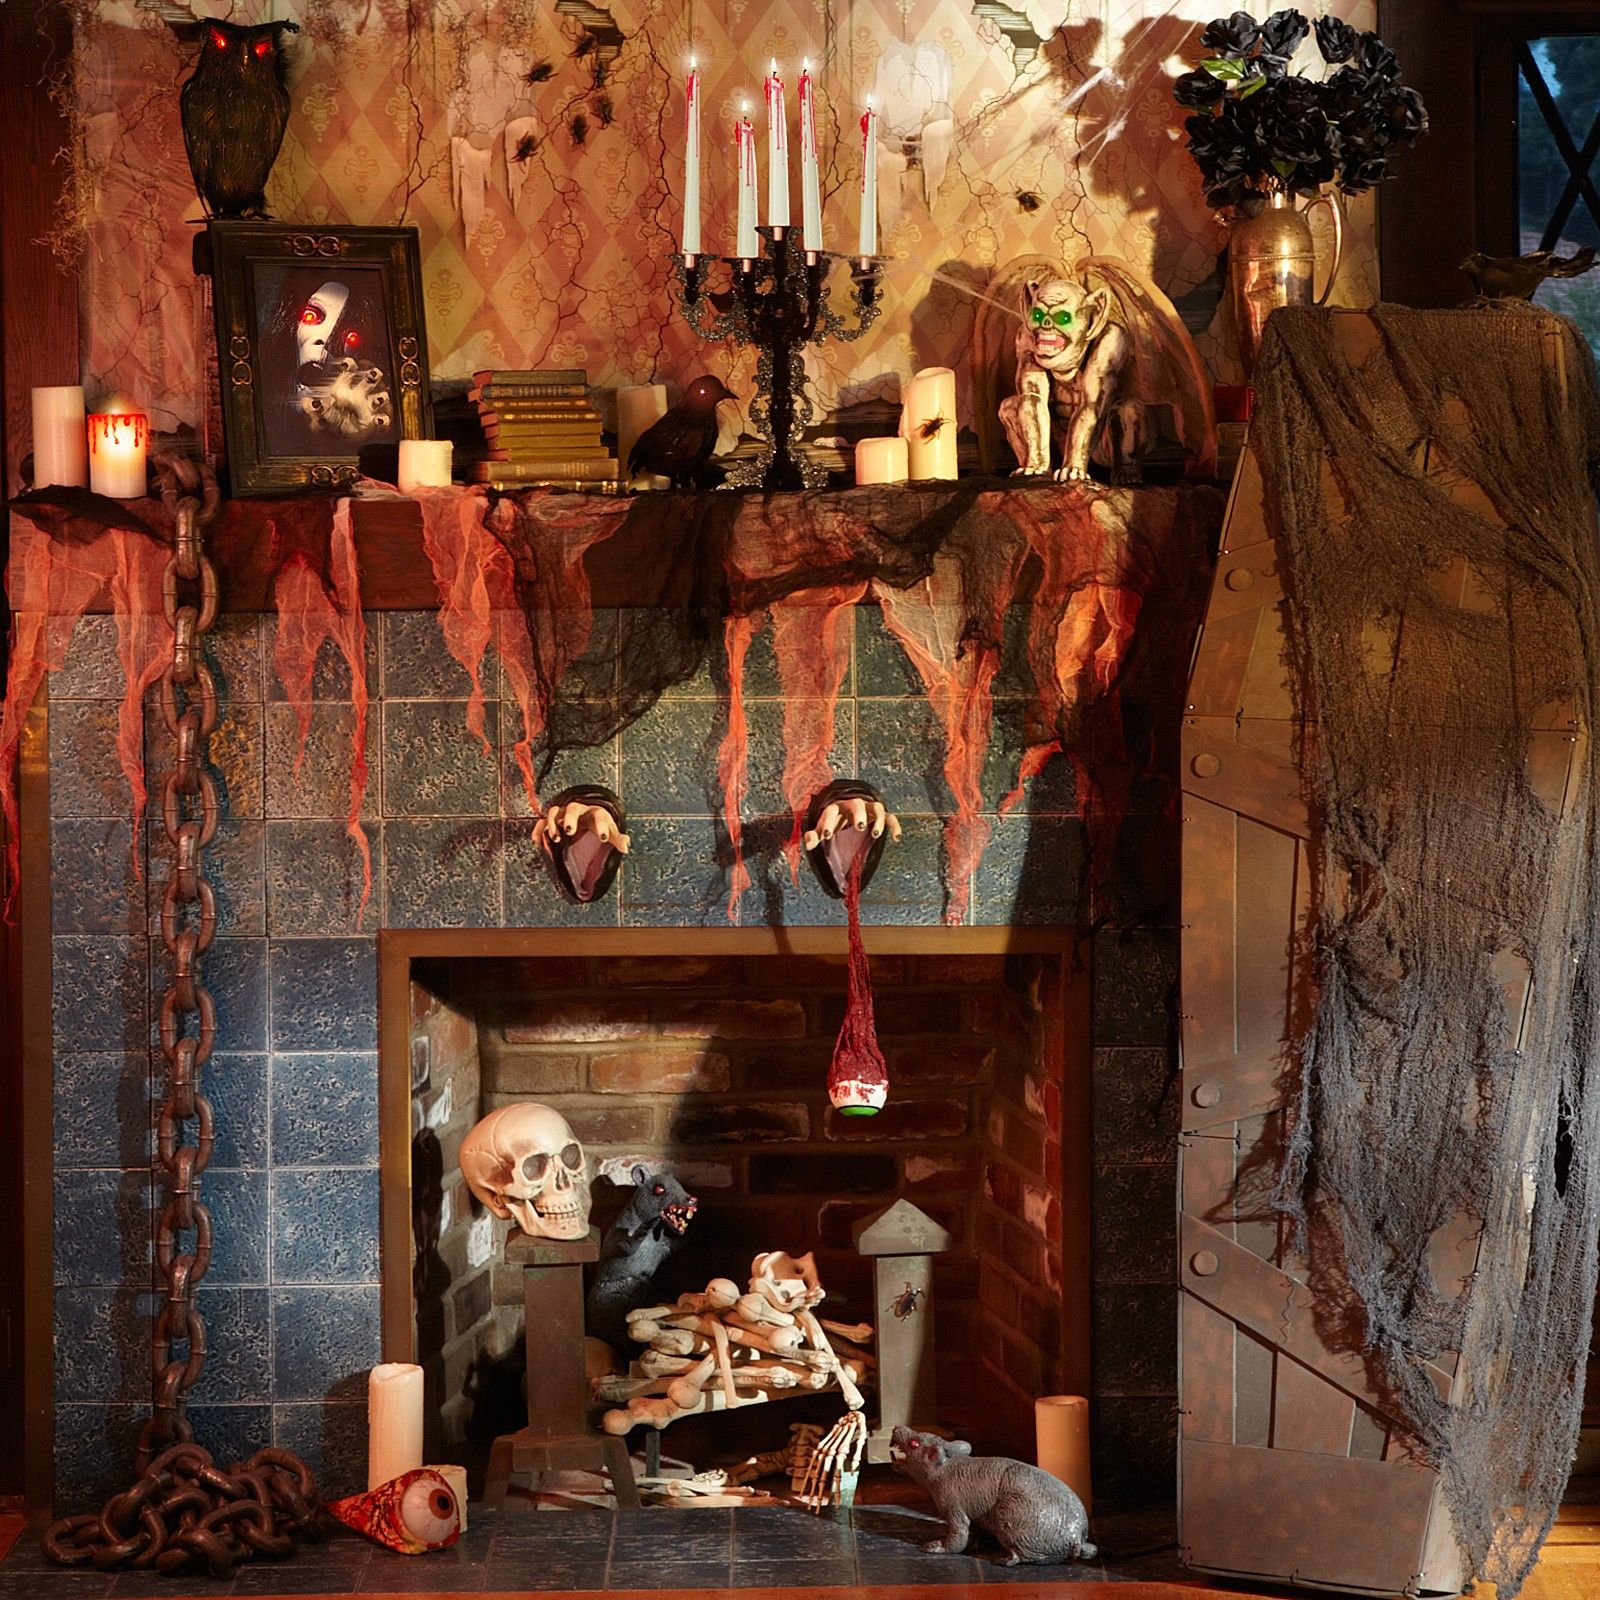 dungeon of terror coffin prop piles of bones chains hands mounted on plaques halloween. Black Bedroom Furniture Sets. Home Design Ideas